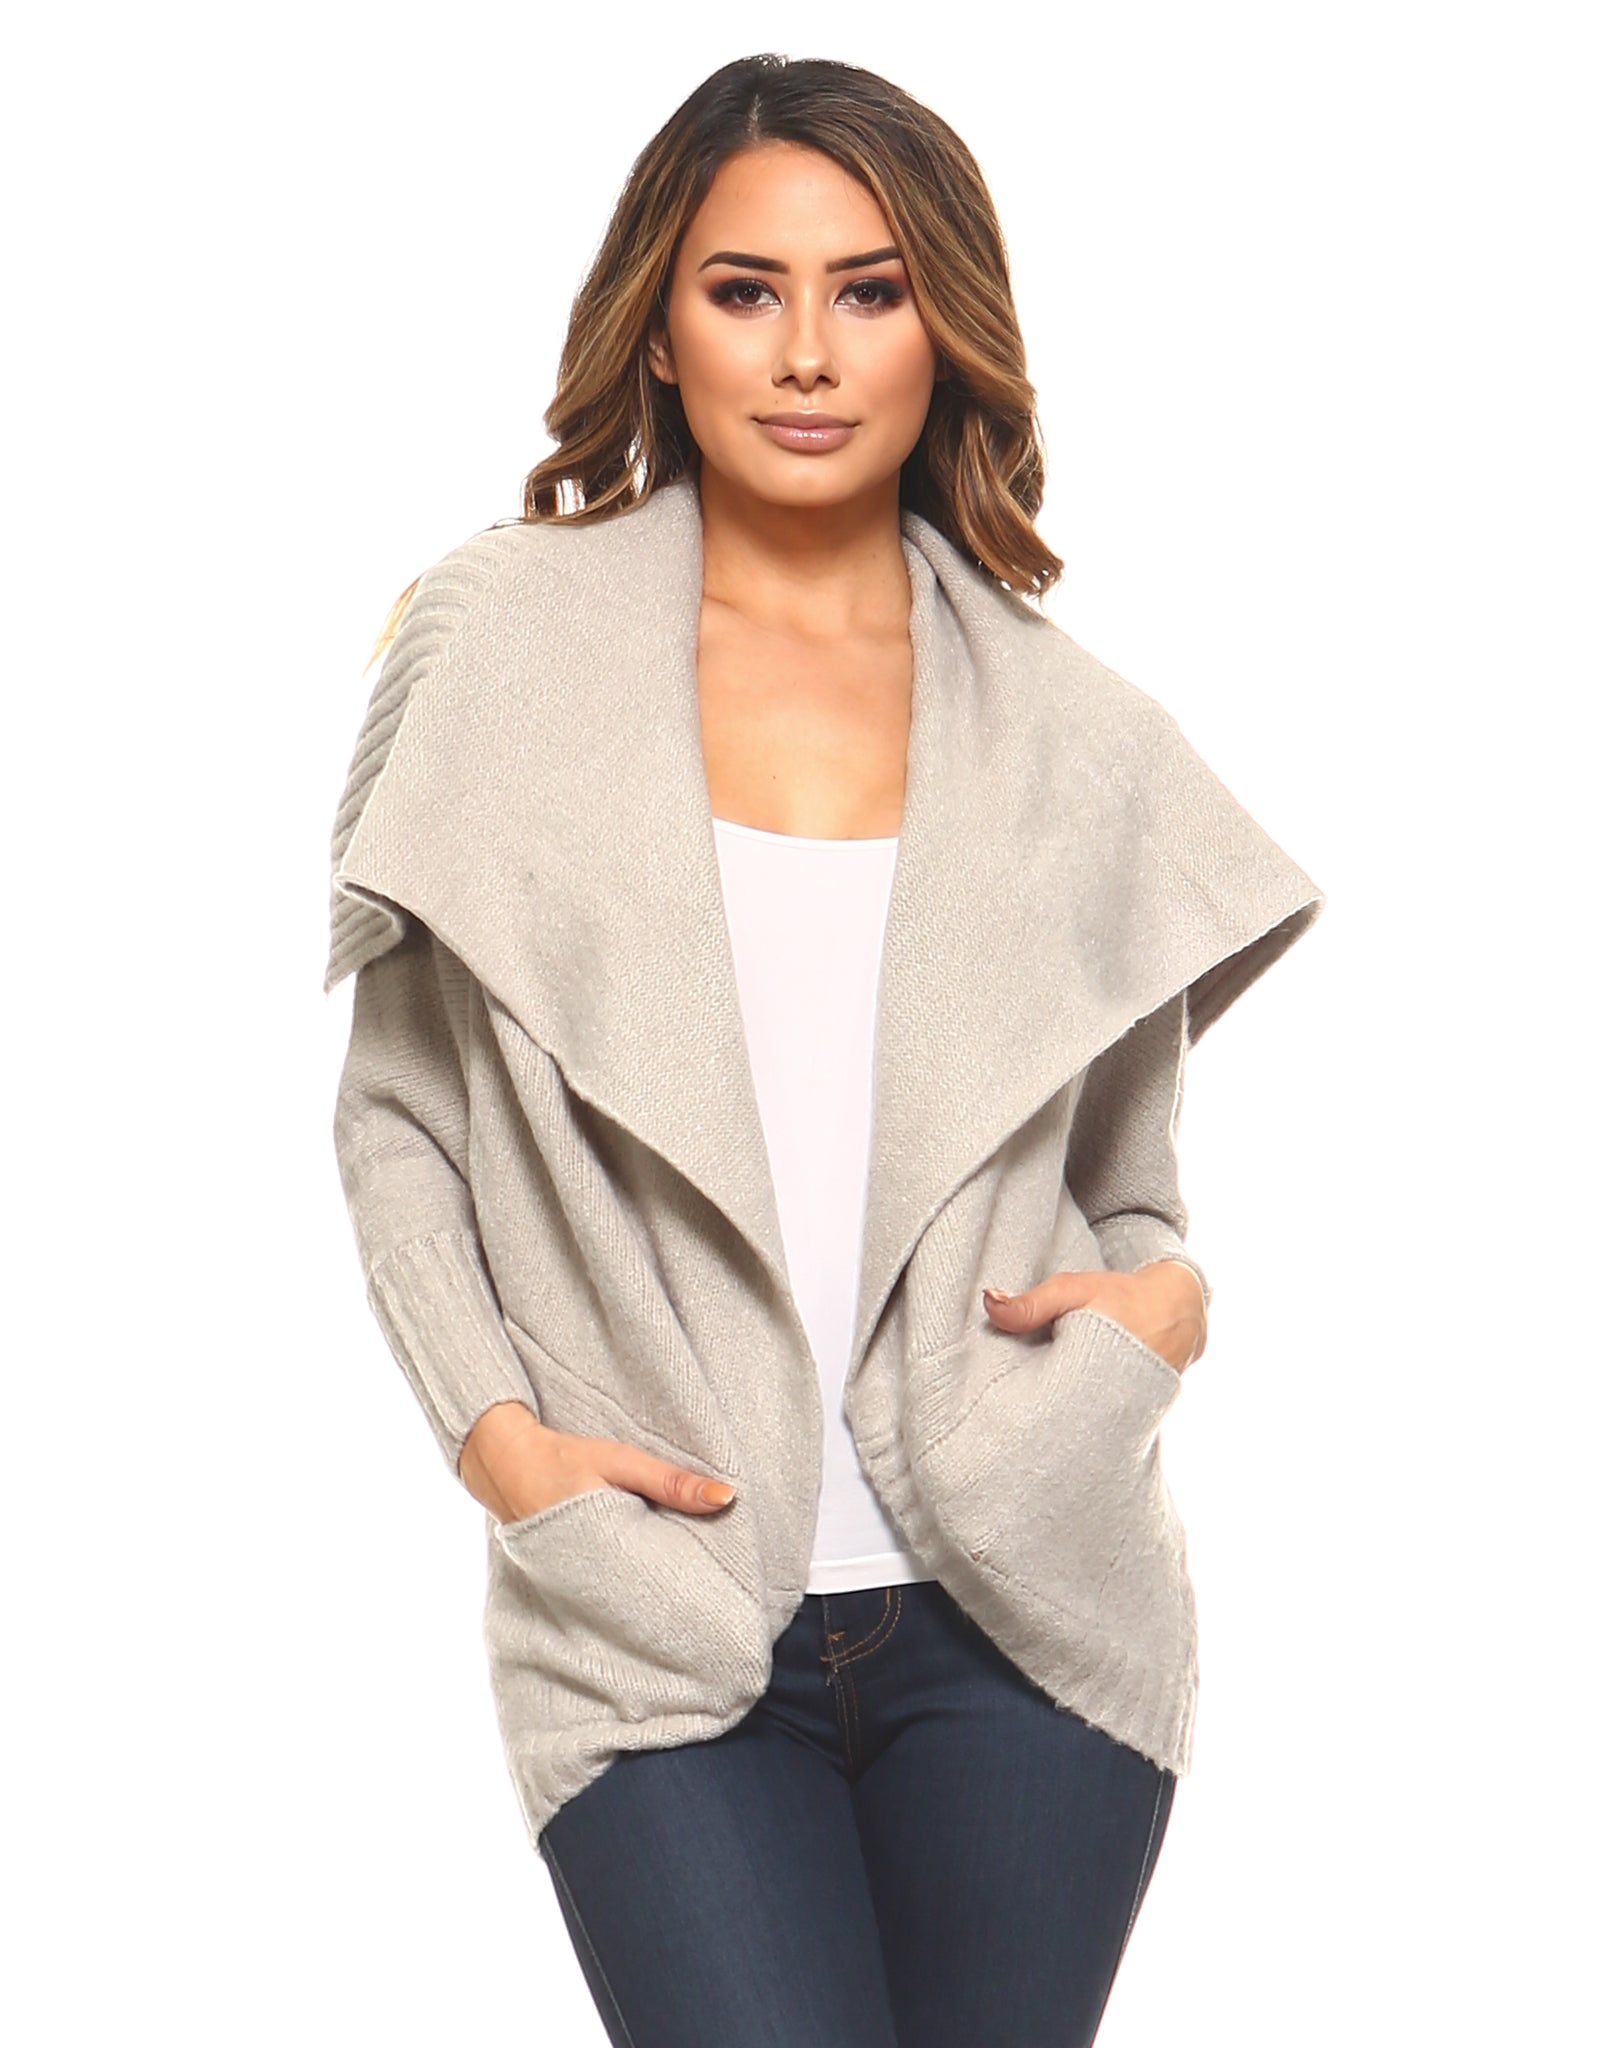 Rounded Warm Pocket Cardigan Sweater - Cream GRAY